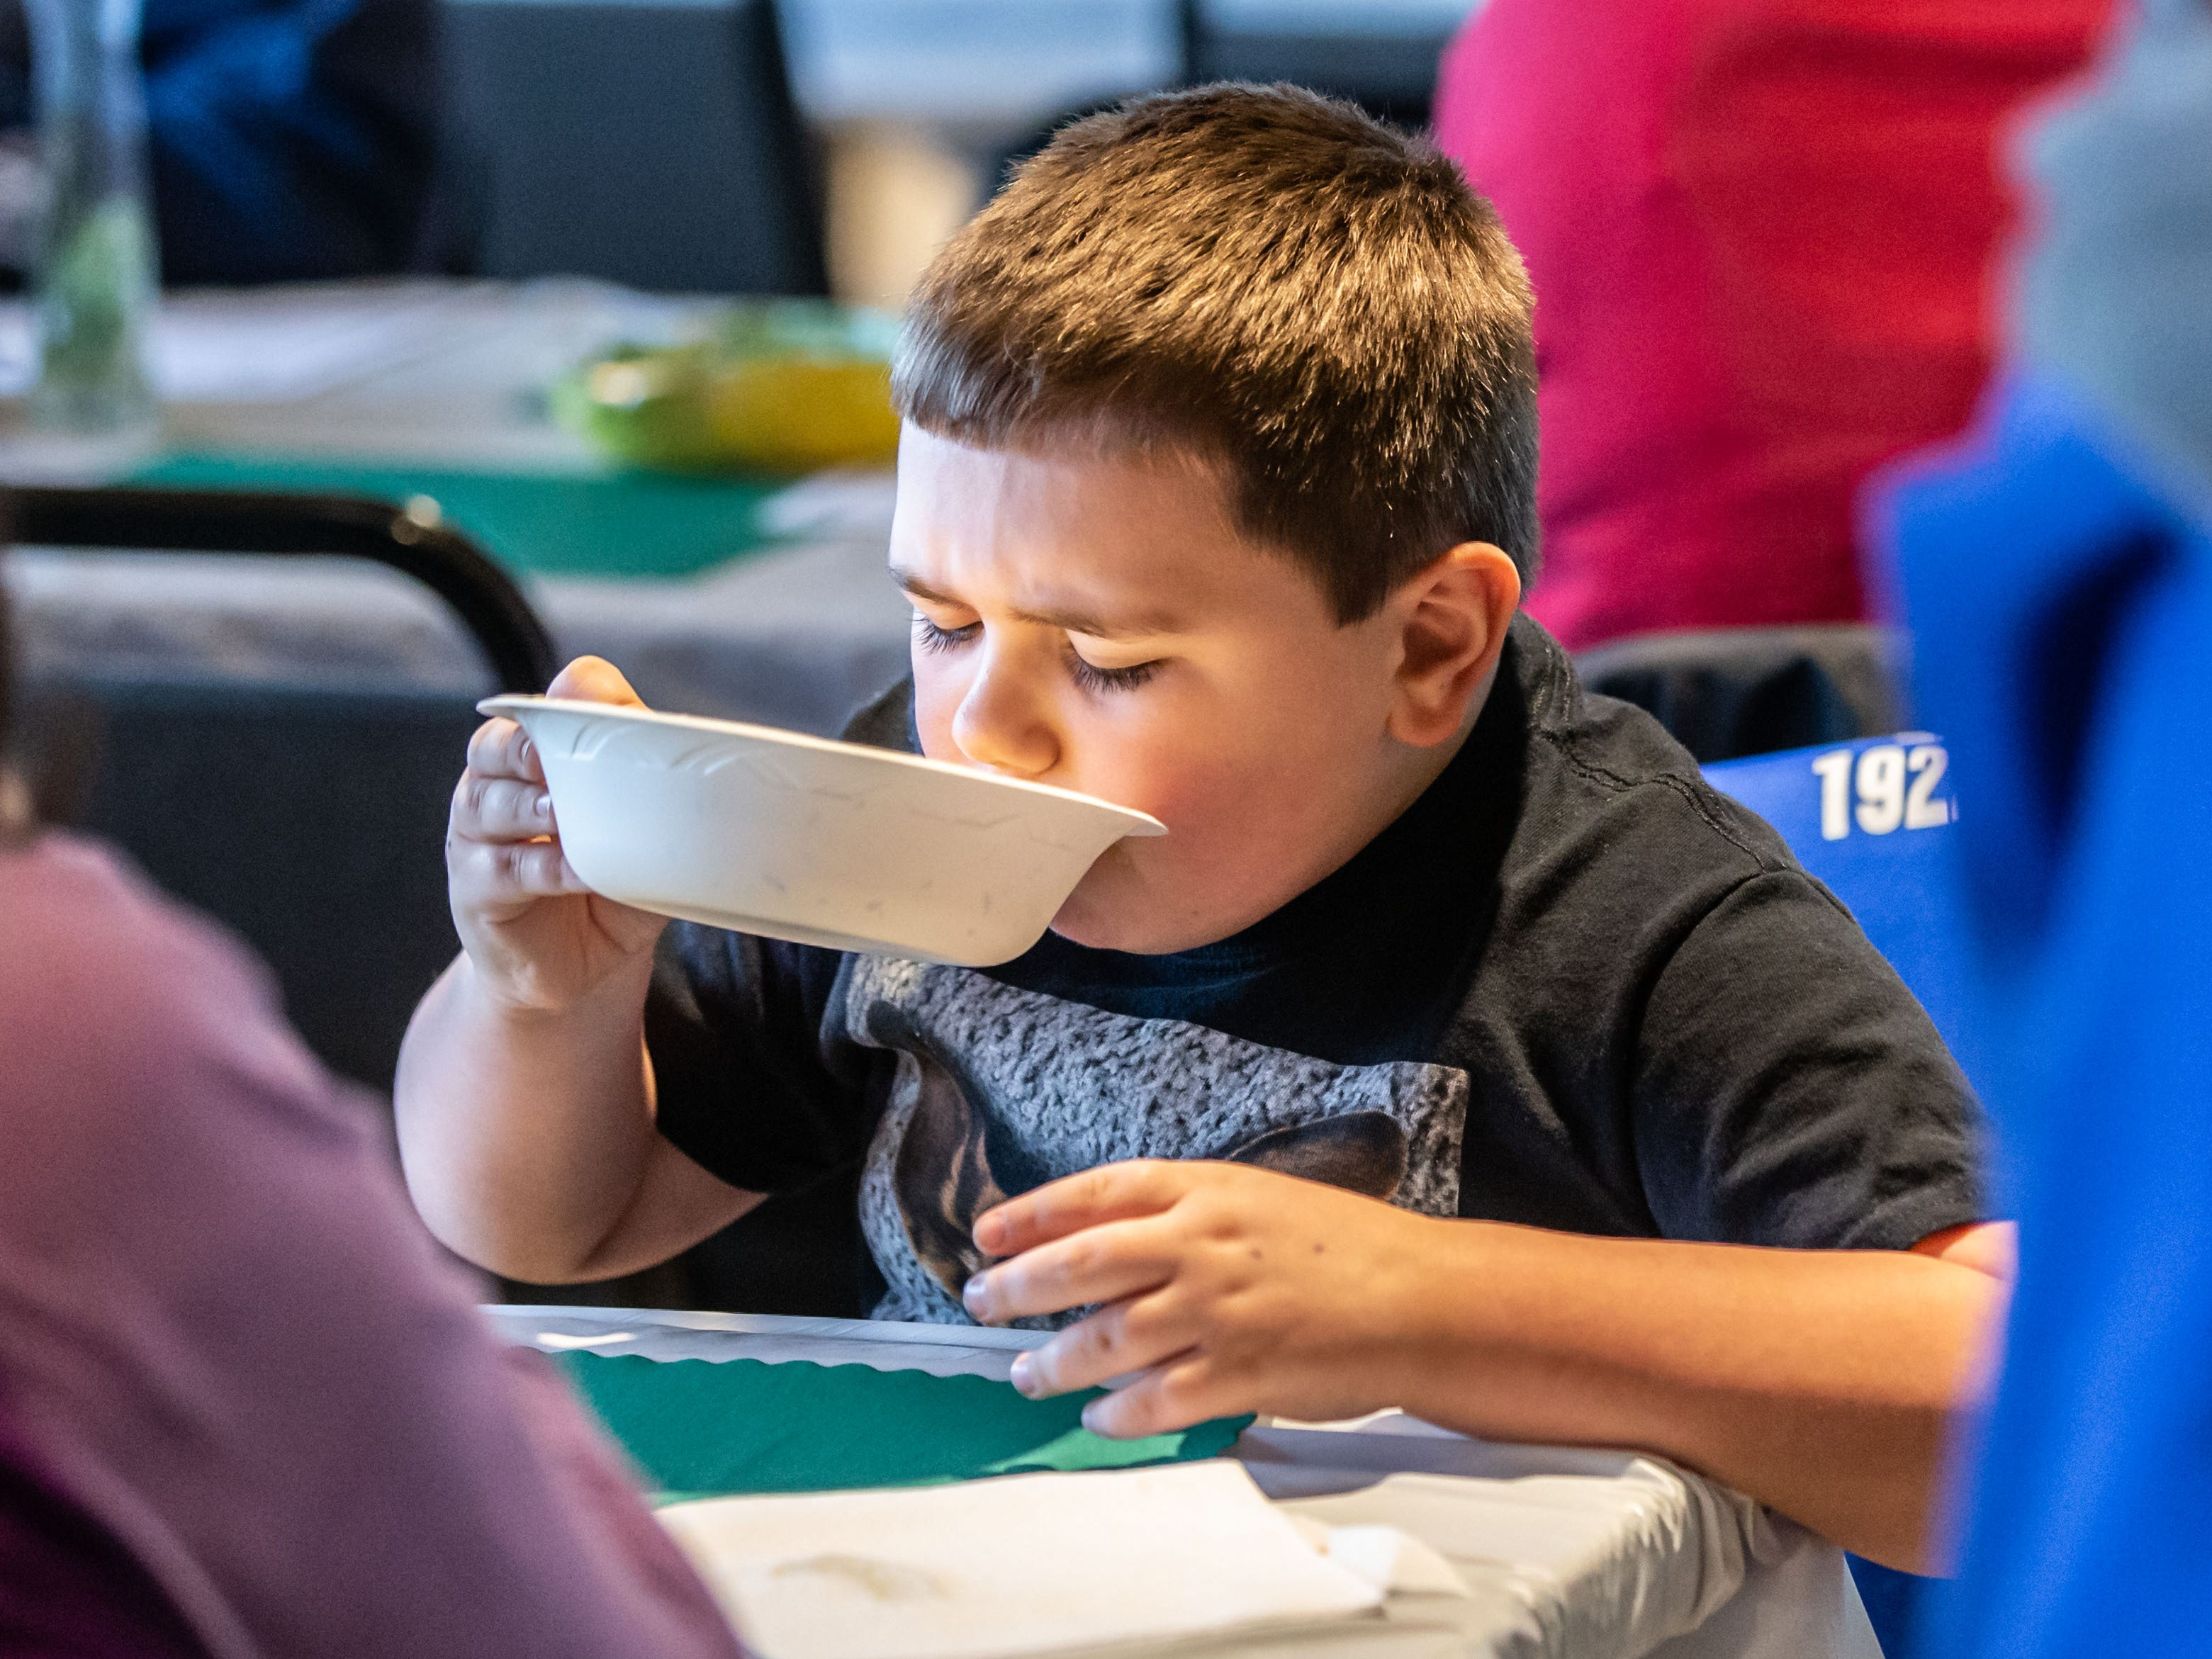 Anthony Pelicaric, 8, of West Allis finishes every last drop of his soup during the 8th annual Empty Bowls event at the LaFollette Park Pavilion in West Allis on Saturday, March 2, 2019. The goal of the event, hosted by the Friends of LaFollette Park, is to collect food and raise funds for West Allis food pantries. Local restaurants, including Senor Sol, Urban Joe Cafe, Filippo's Italian Restaurant, Pallas Restaurant, and West Allis Cheese and Sausage Shop donate the delicious soups offered at the event.